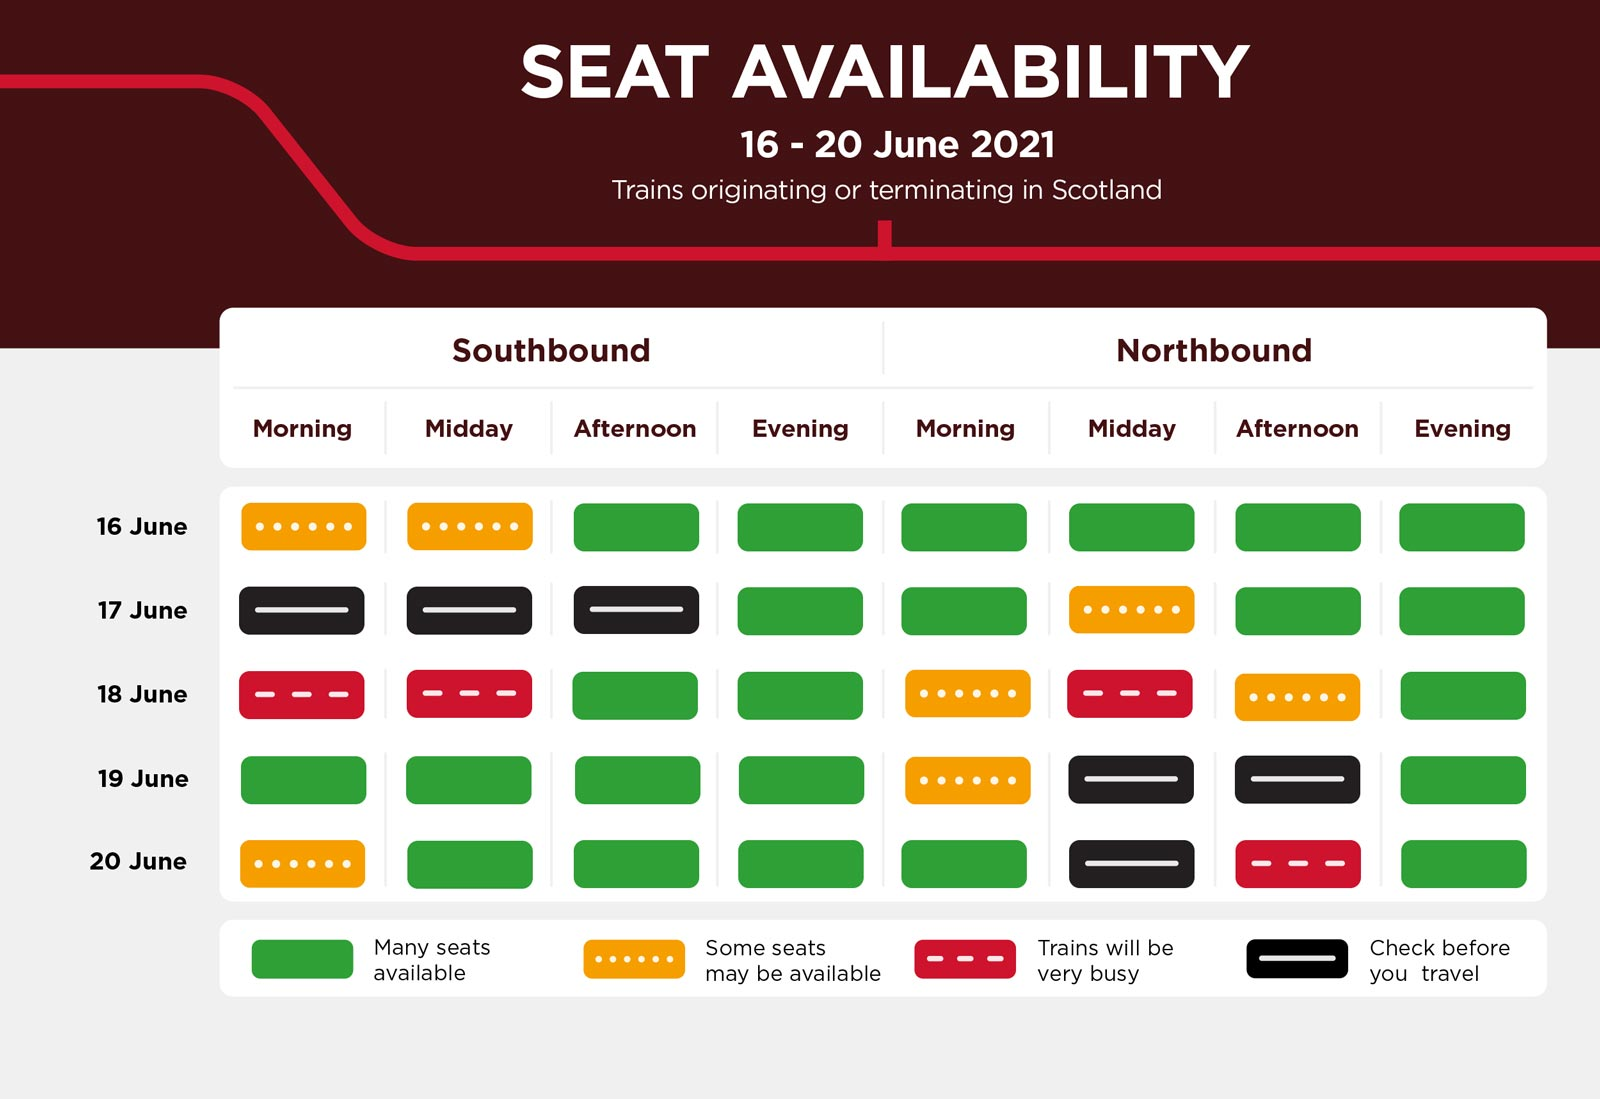 Euro-Seat-Graphic-Scotland-16-to-20-June-2021.jpg